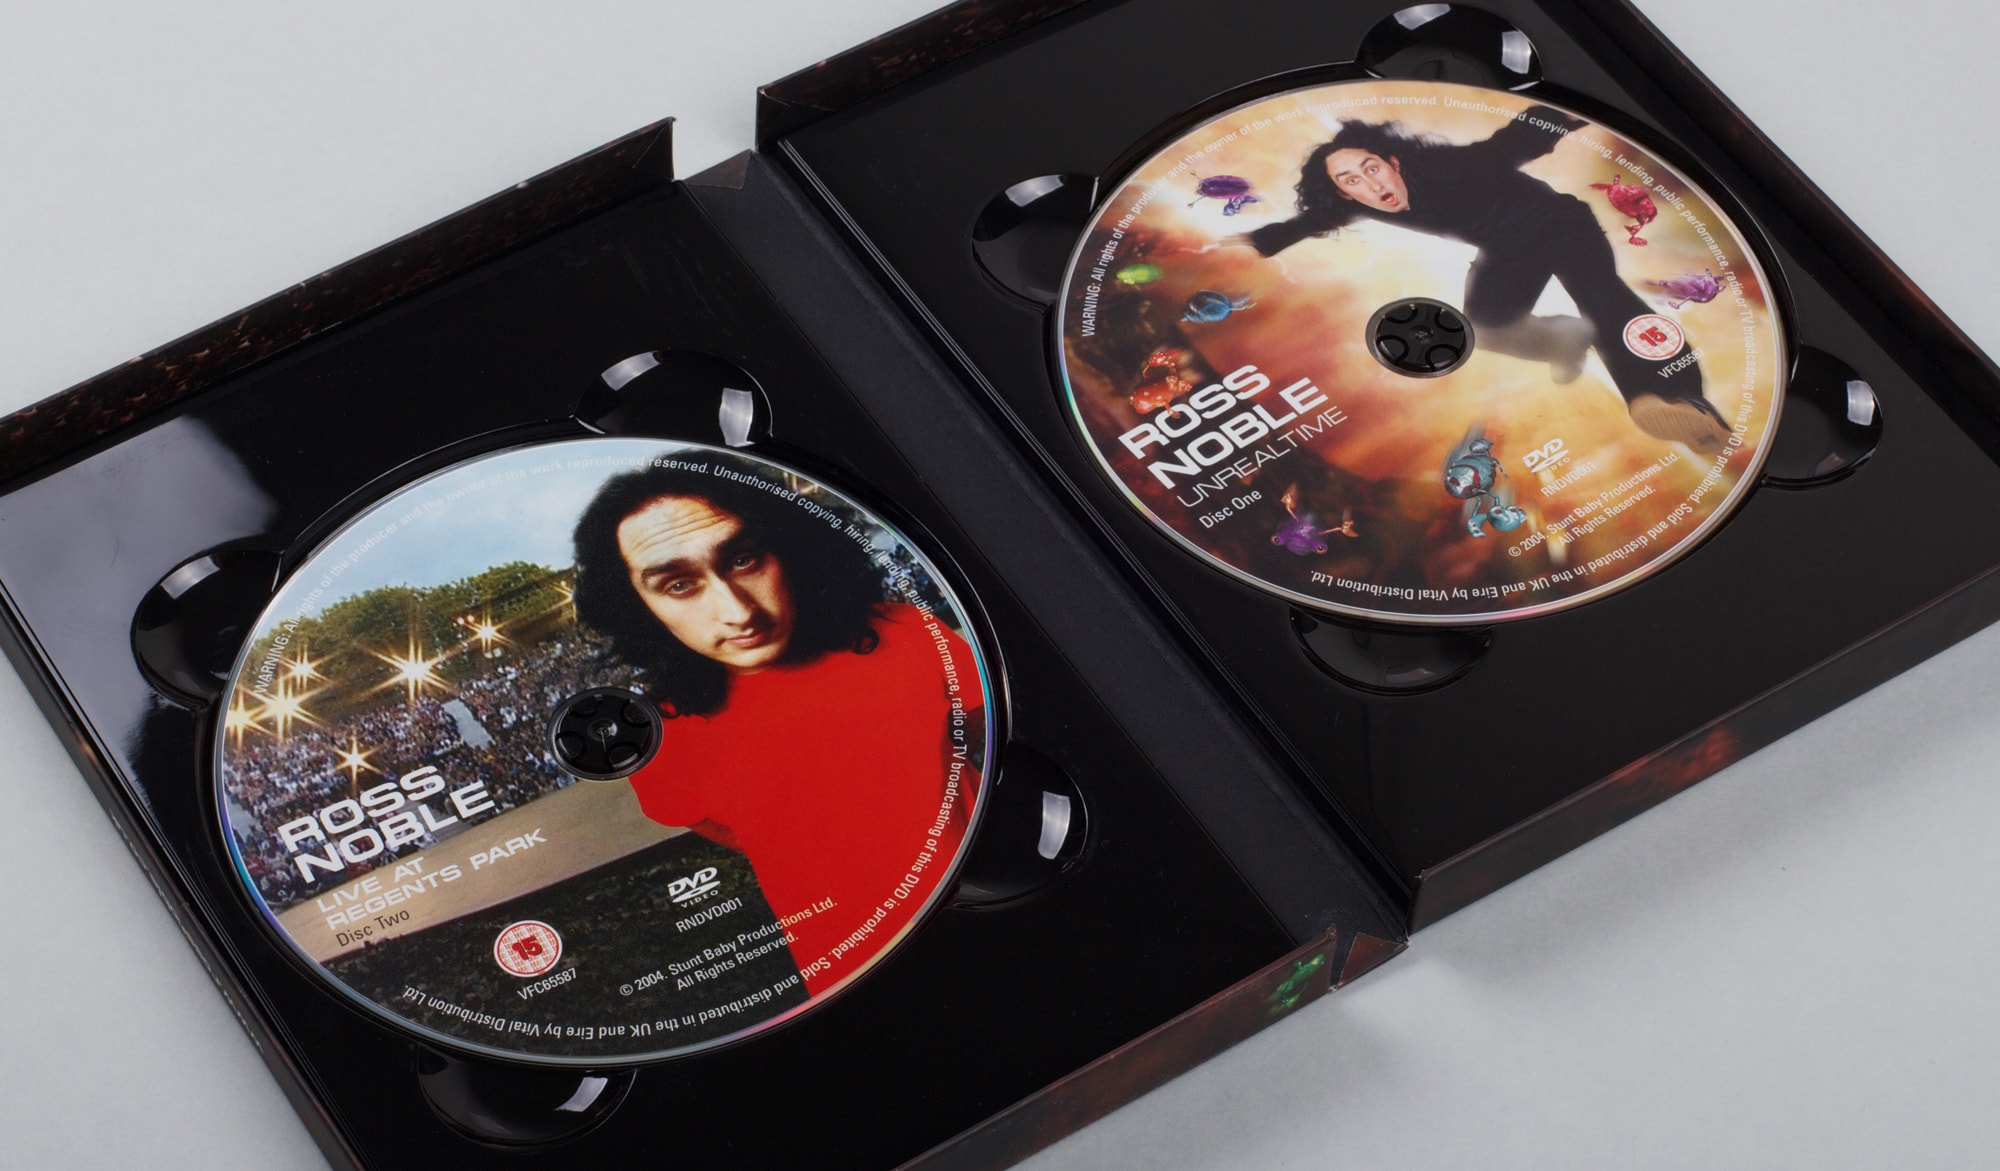 Ross Noble - Unrealtime DVD - packaging